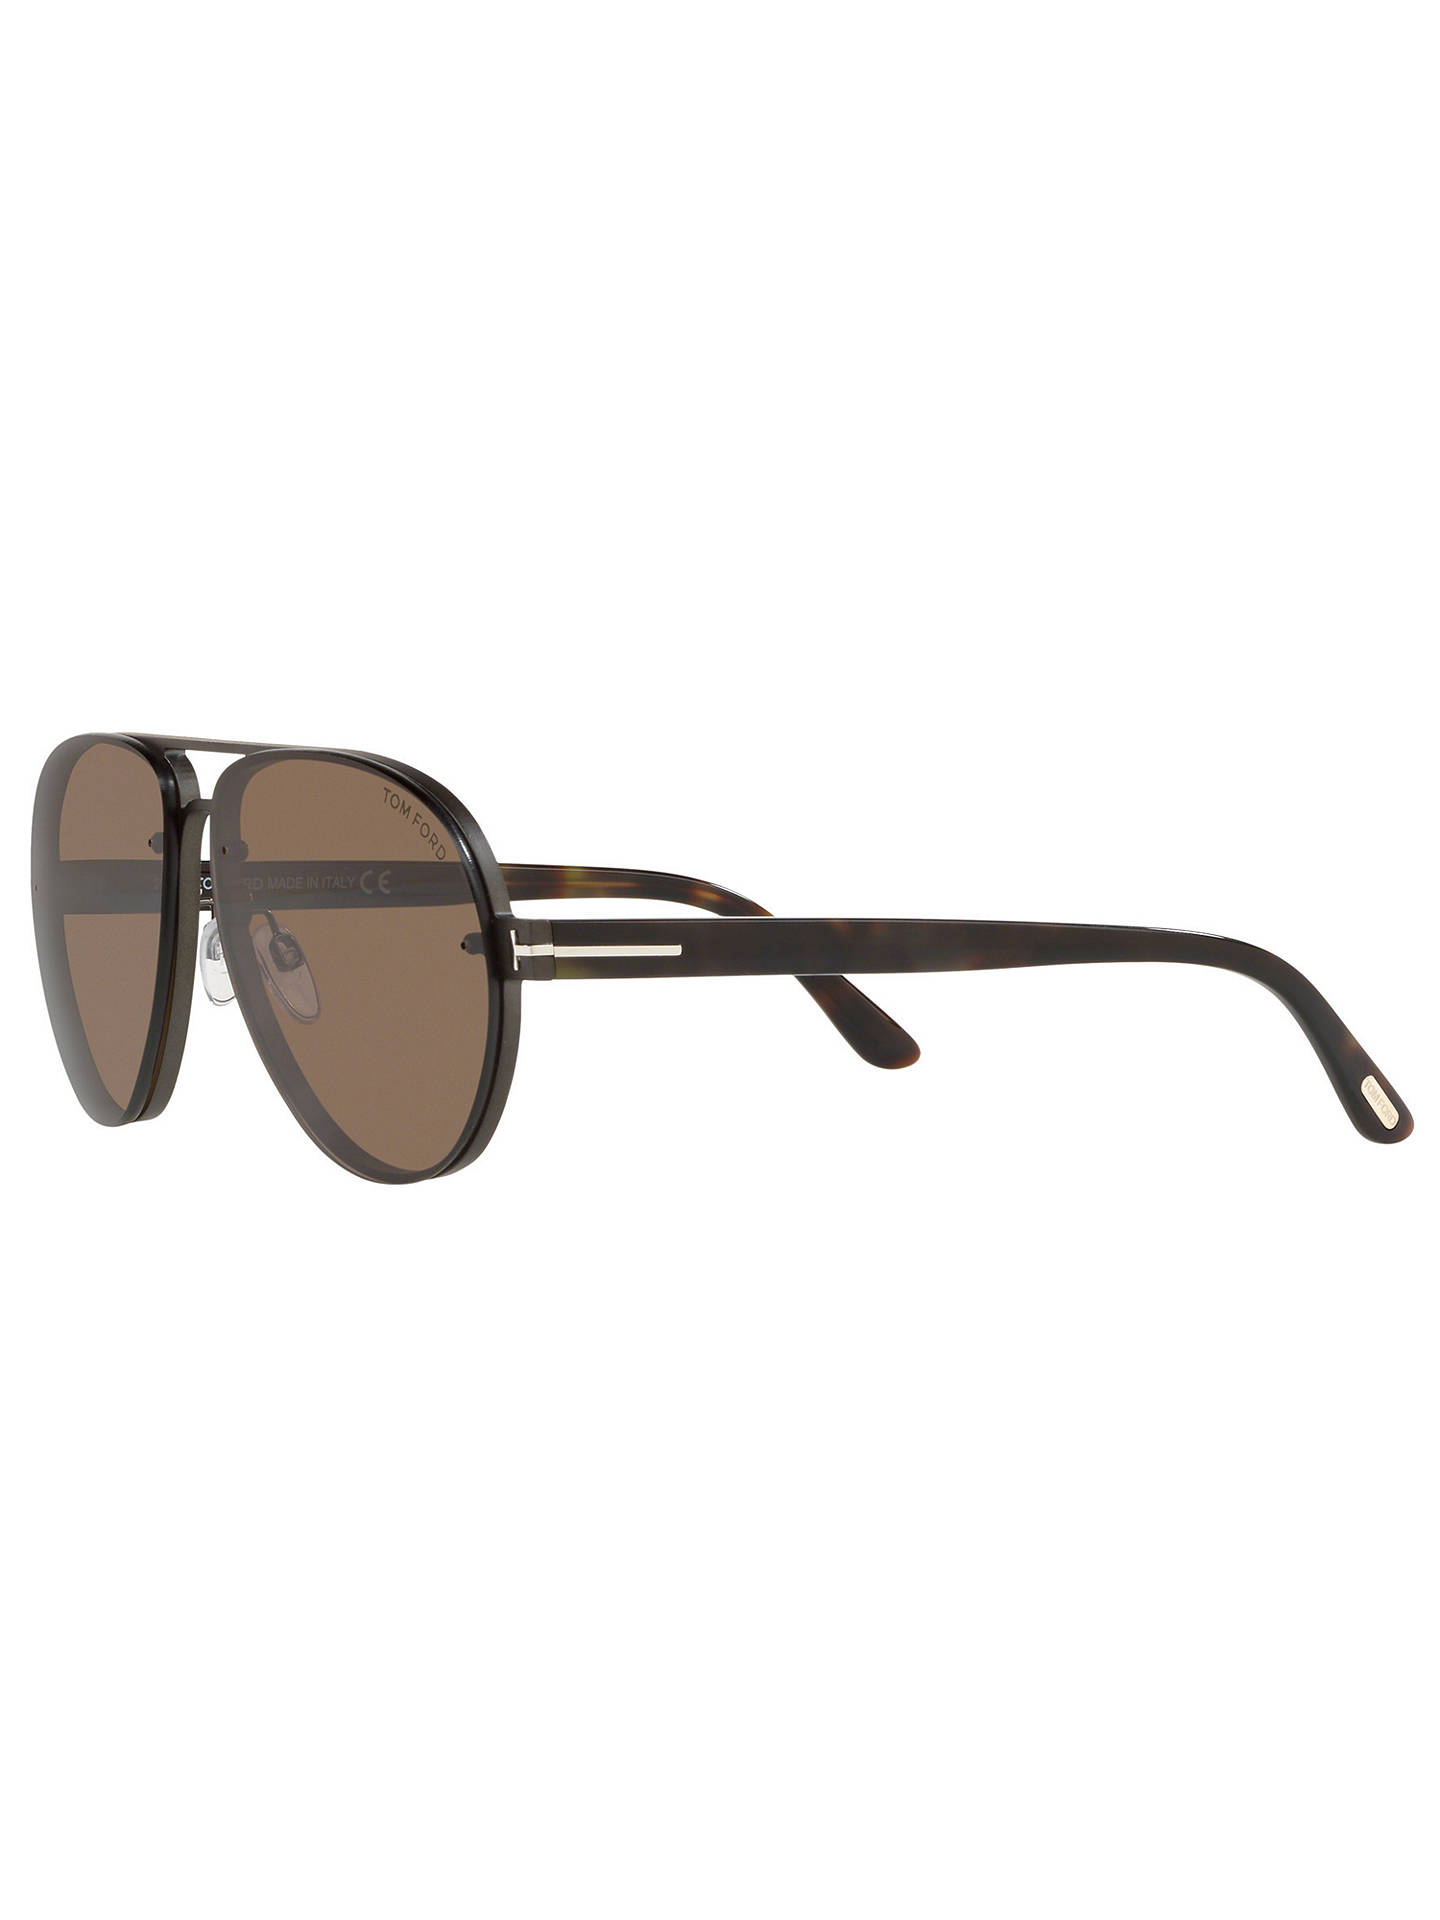 BuyTOM FORD FT0622 Men's Alexei-02 Aviator Sunglasses, Grey/Brown Online at johnlewis.com